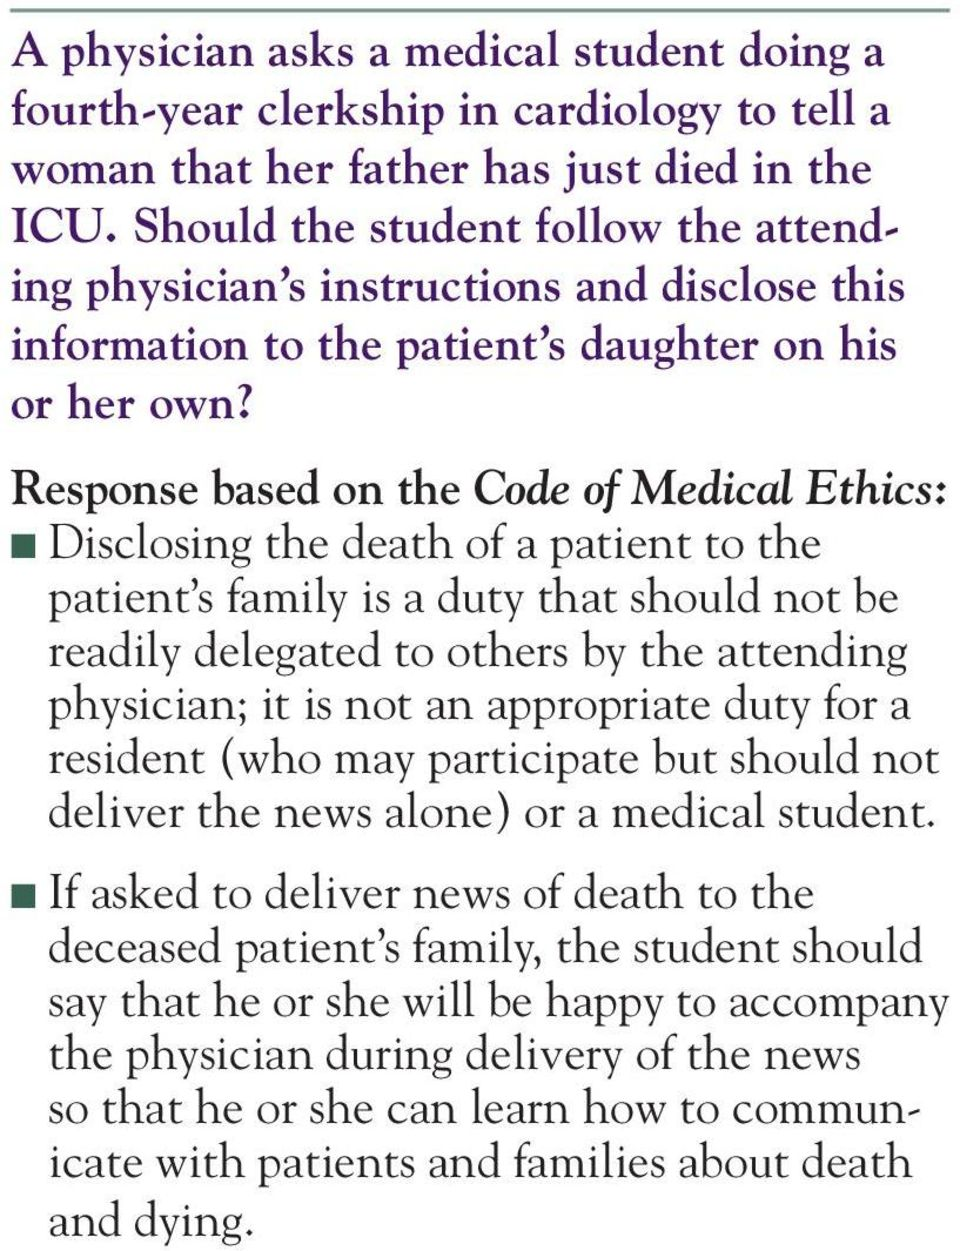 Response based on the Code of Medical Ethics: n Disclosing the death of a patient to the patient s family is a duty that should not be readily delegated to others by the attending physician; it is